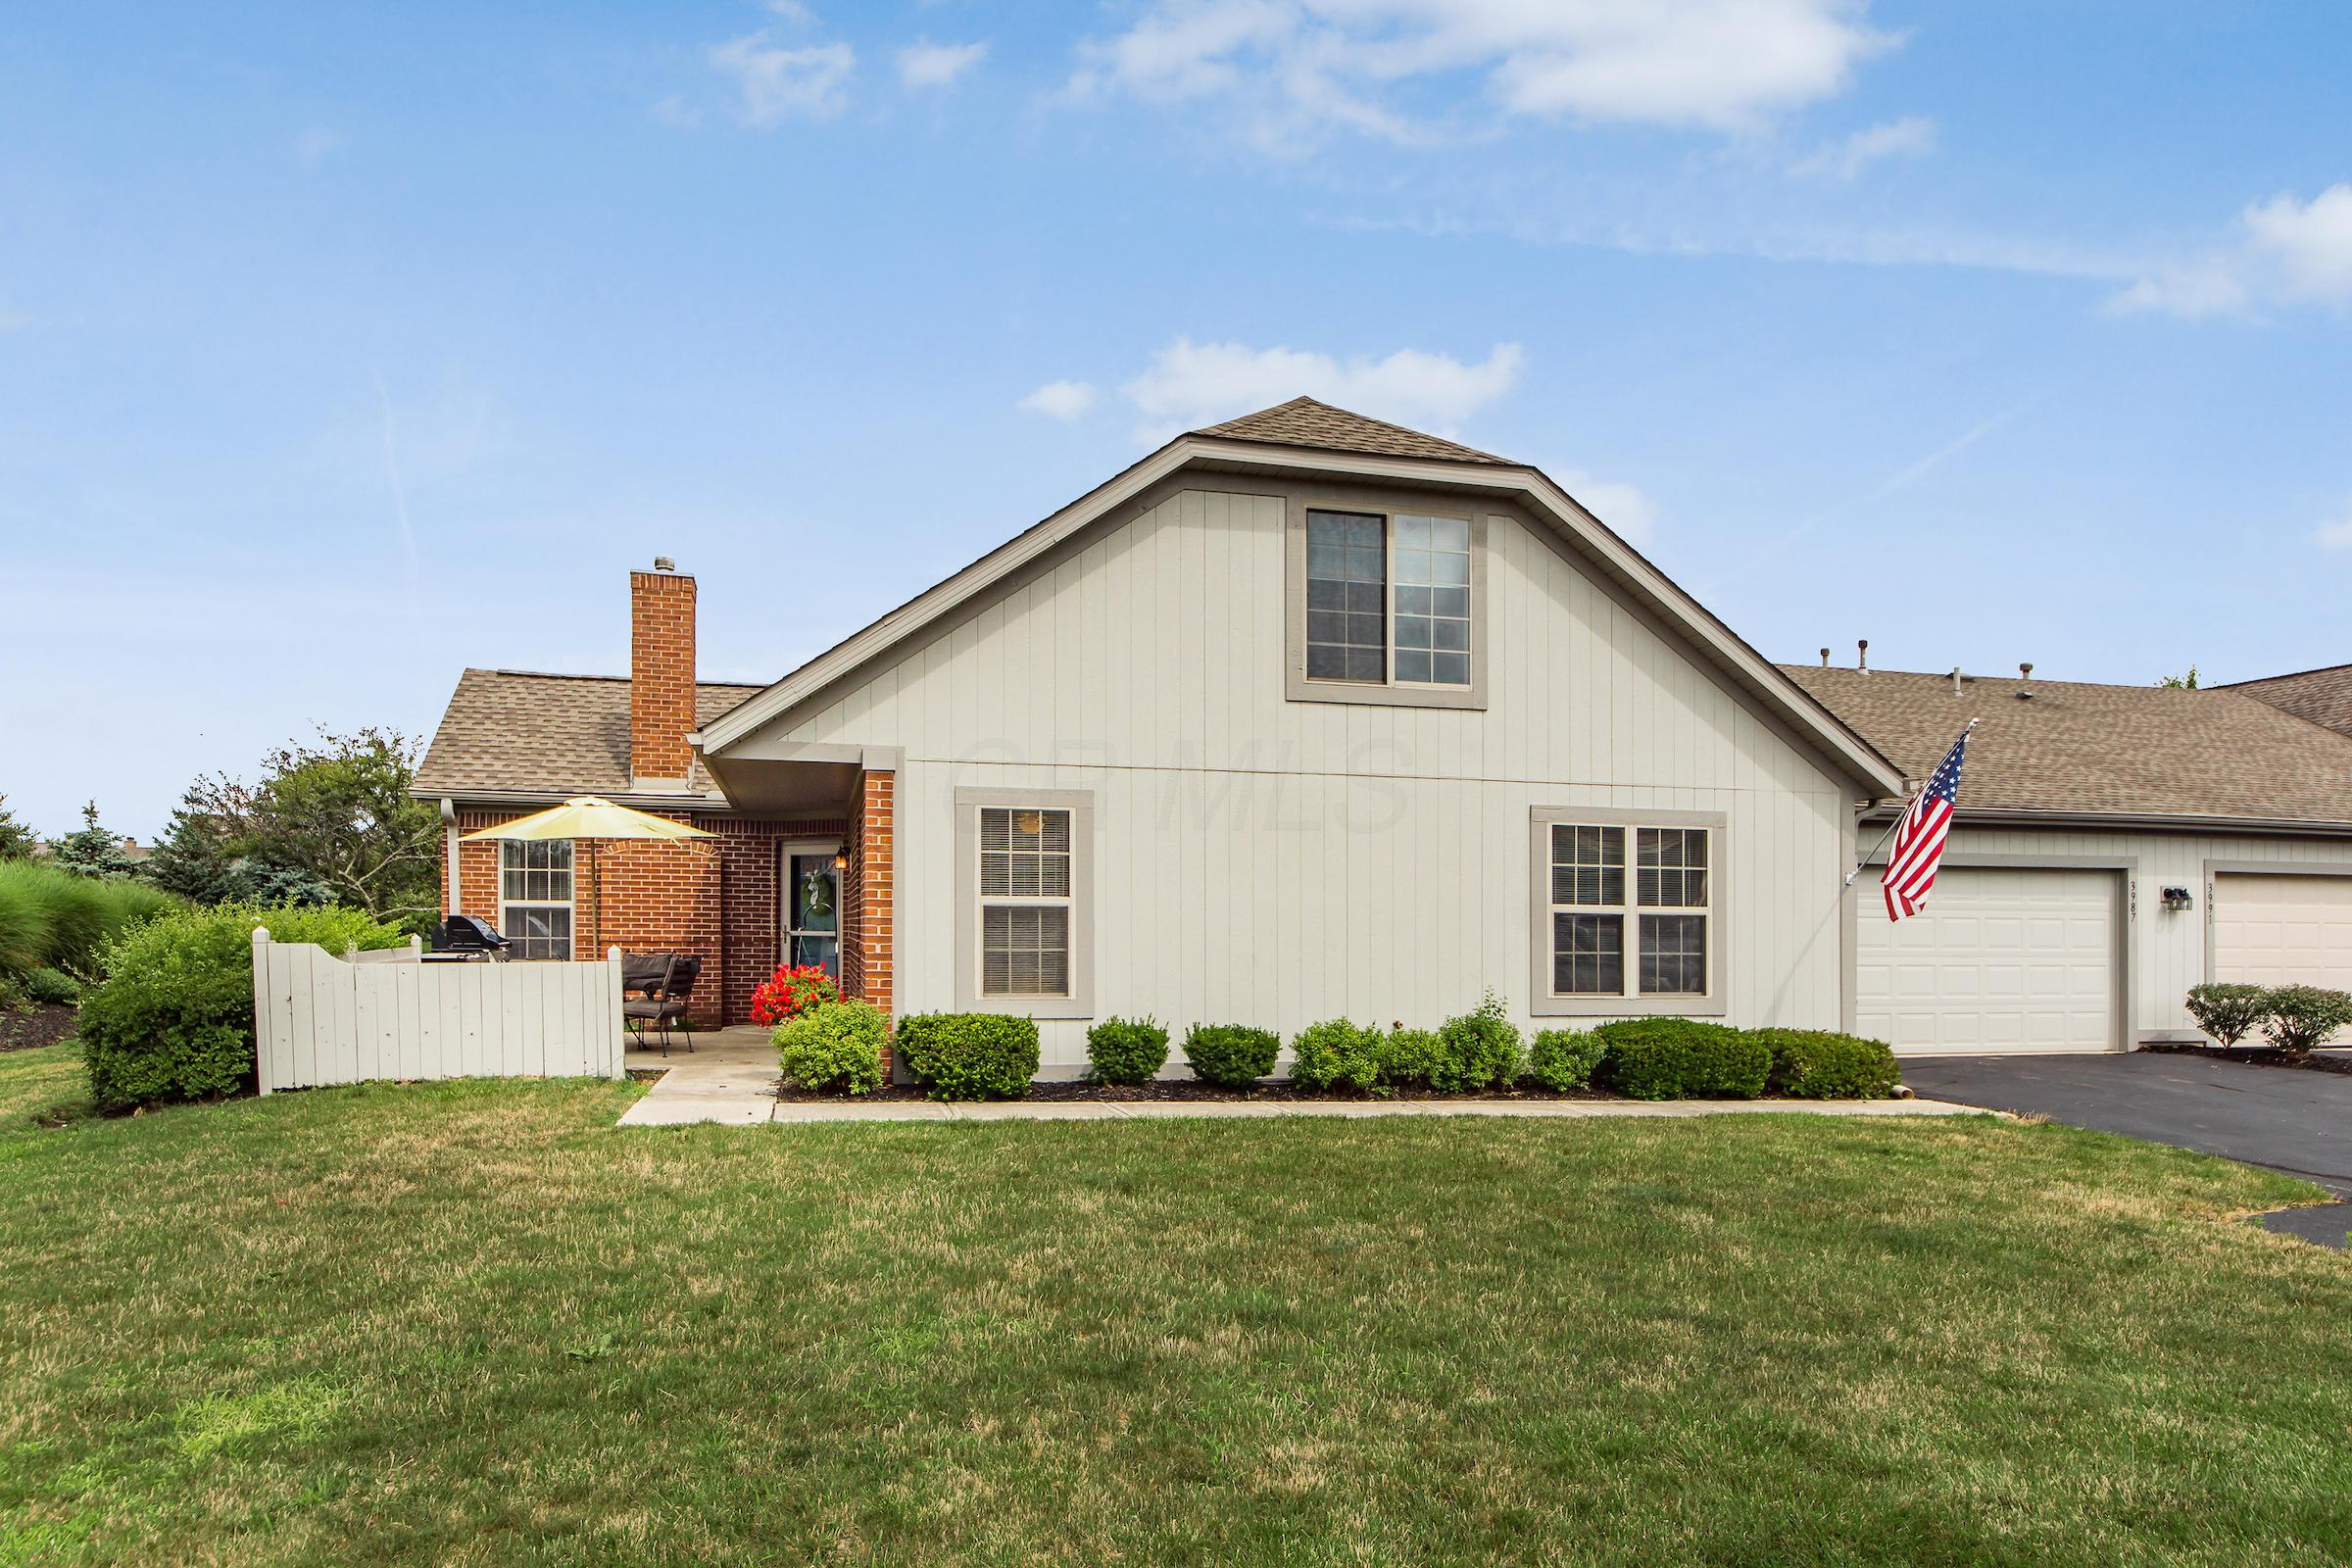 3987 Orchard View Place, Powell, Ohio 43065, 3 Bedrooms Bedrooms, ,3 BathroomsBathrooms,Residential,For Sale,Orchard View,220025180